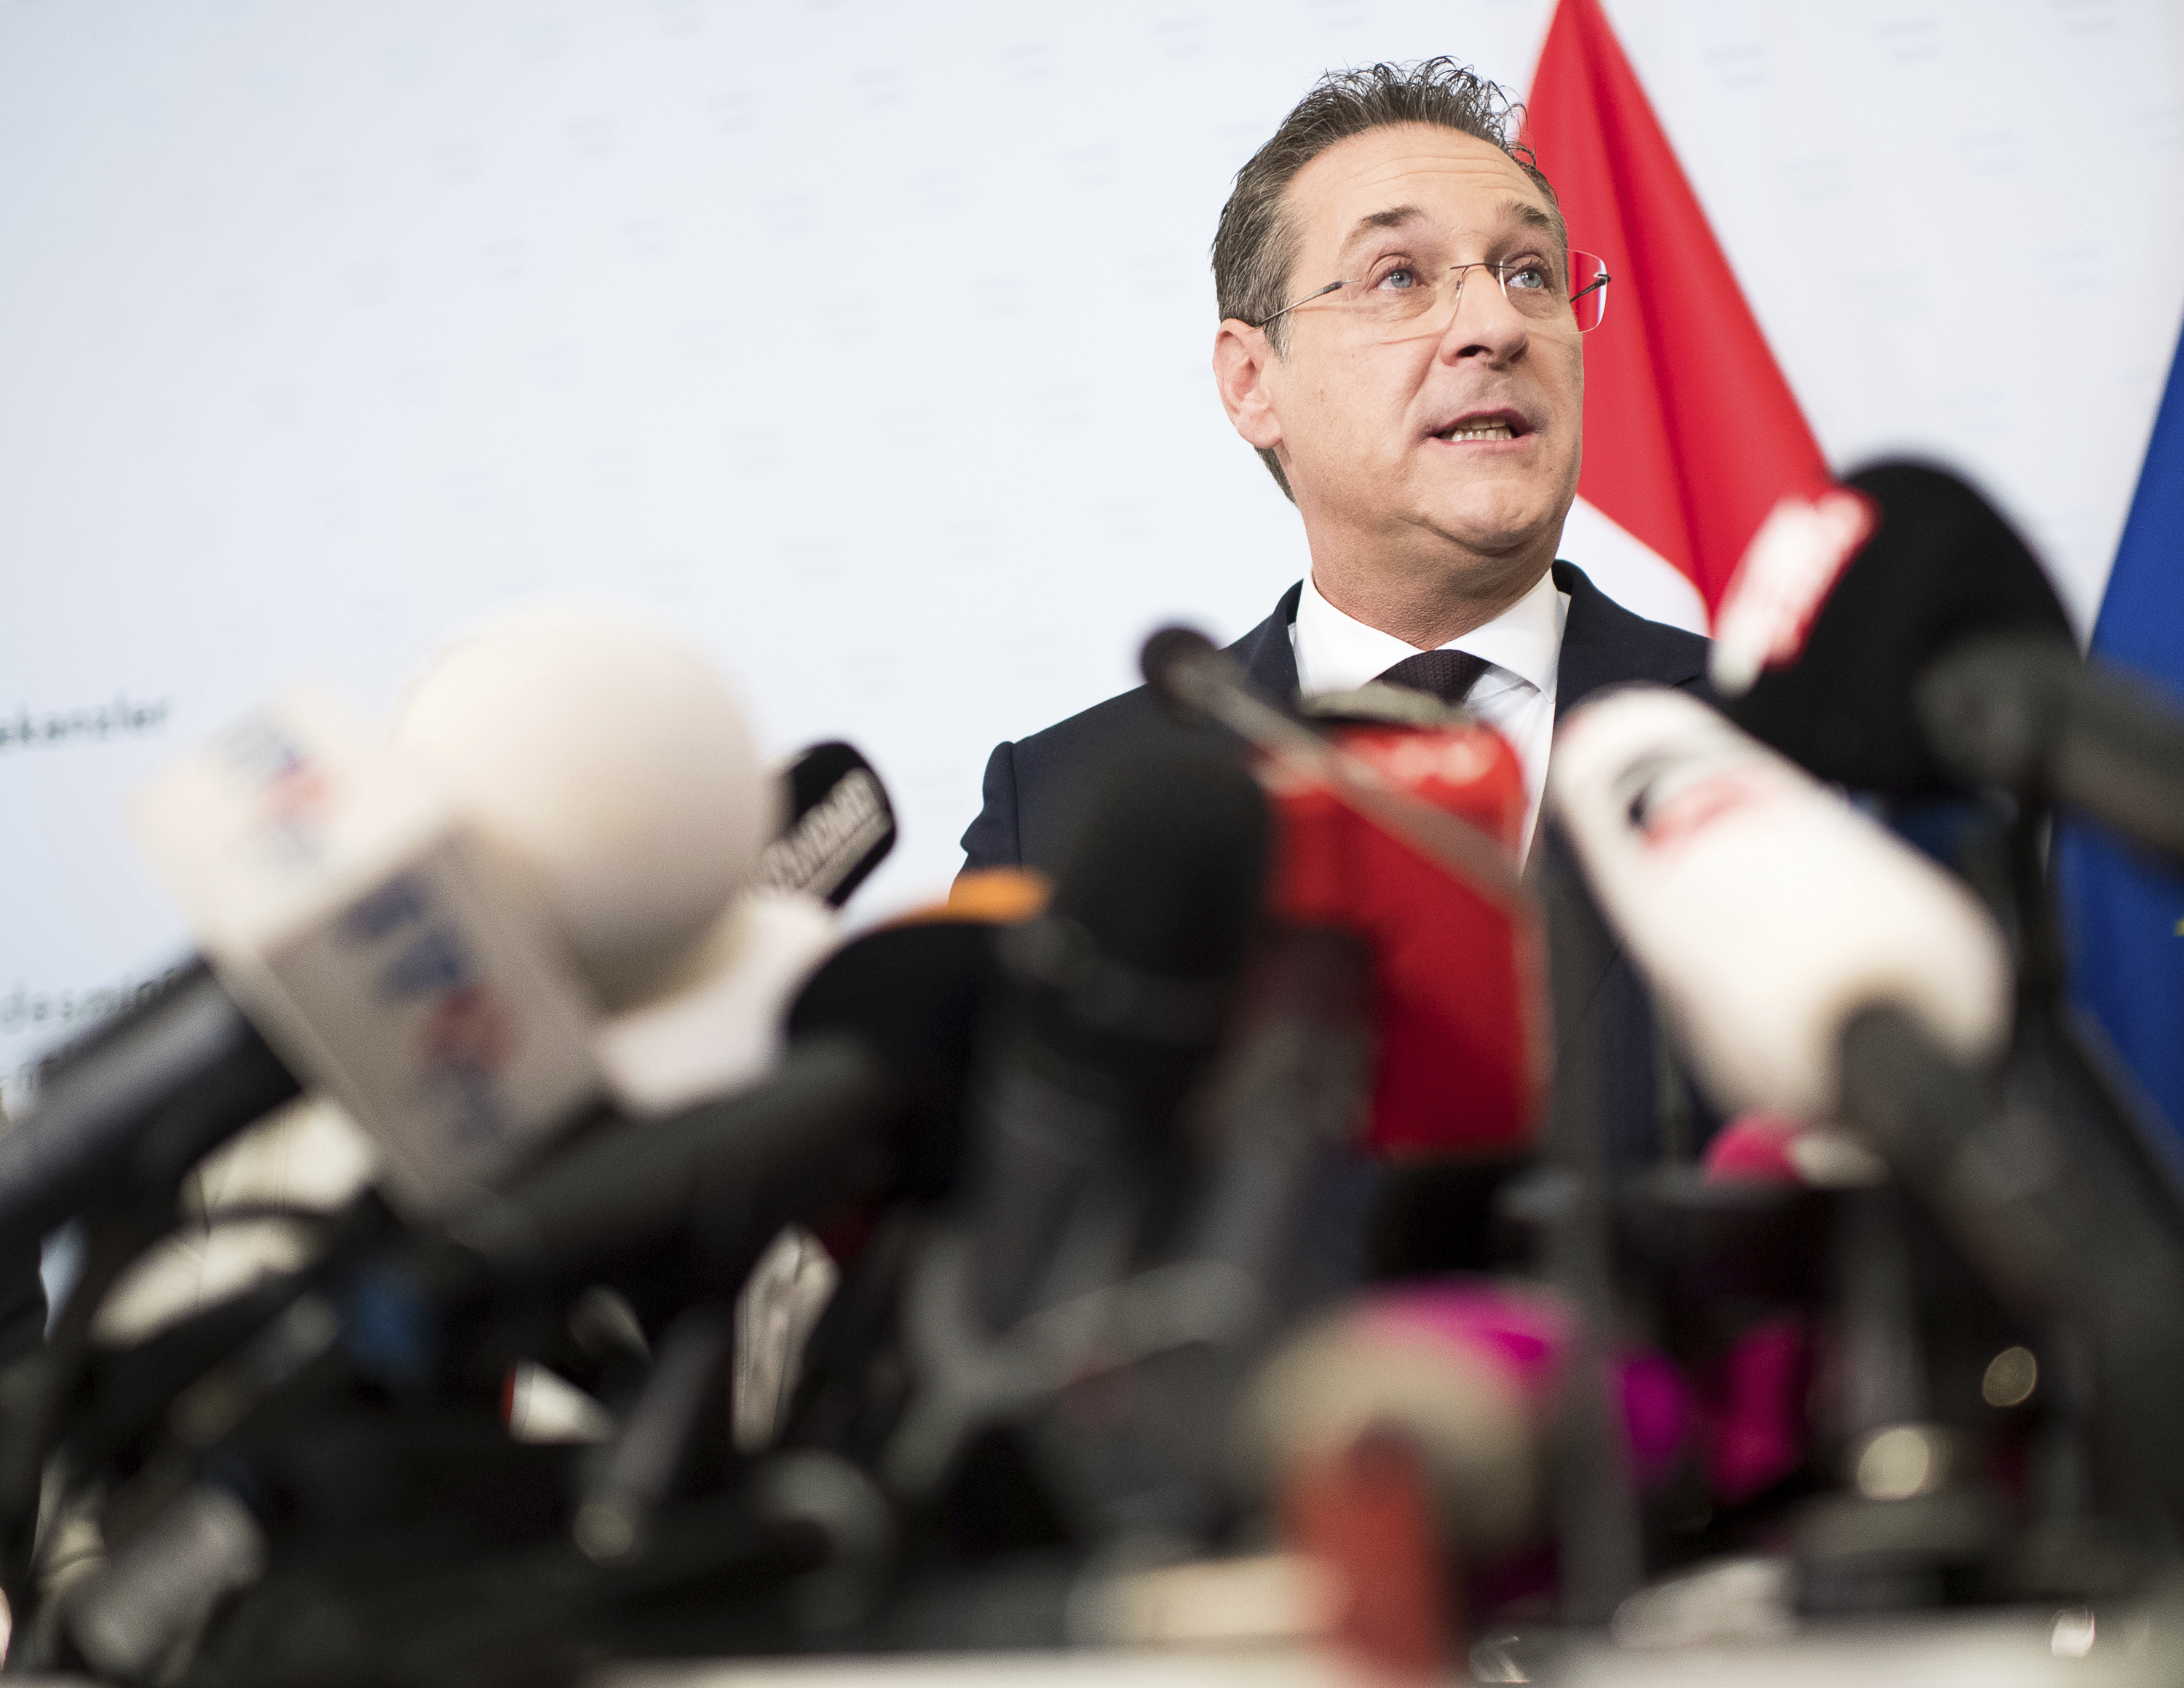 Austrian Vice Chancellor Heinz-Christian Strache, center, addresses the media during press conference at the sport ministry in Vienna, Austria, May 18, 2019.